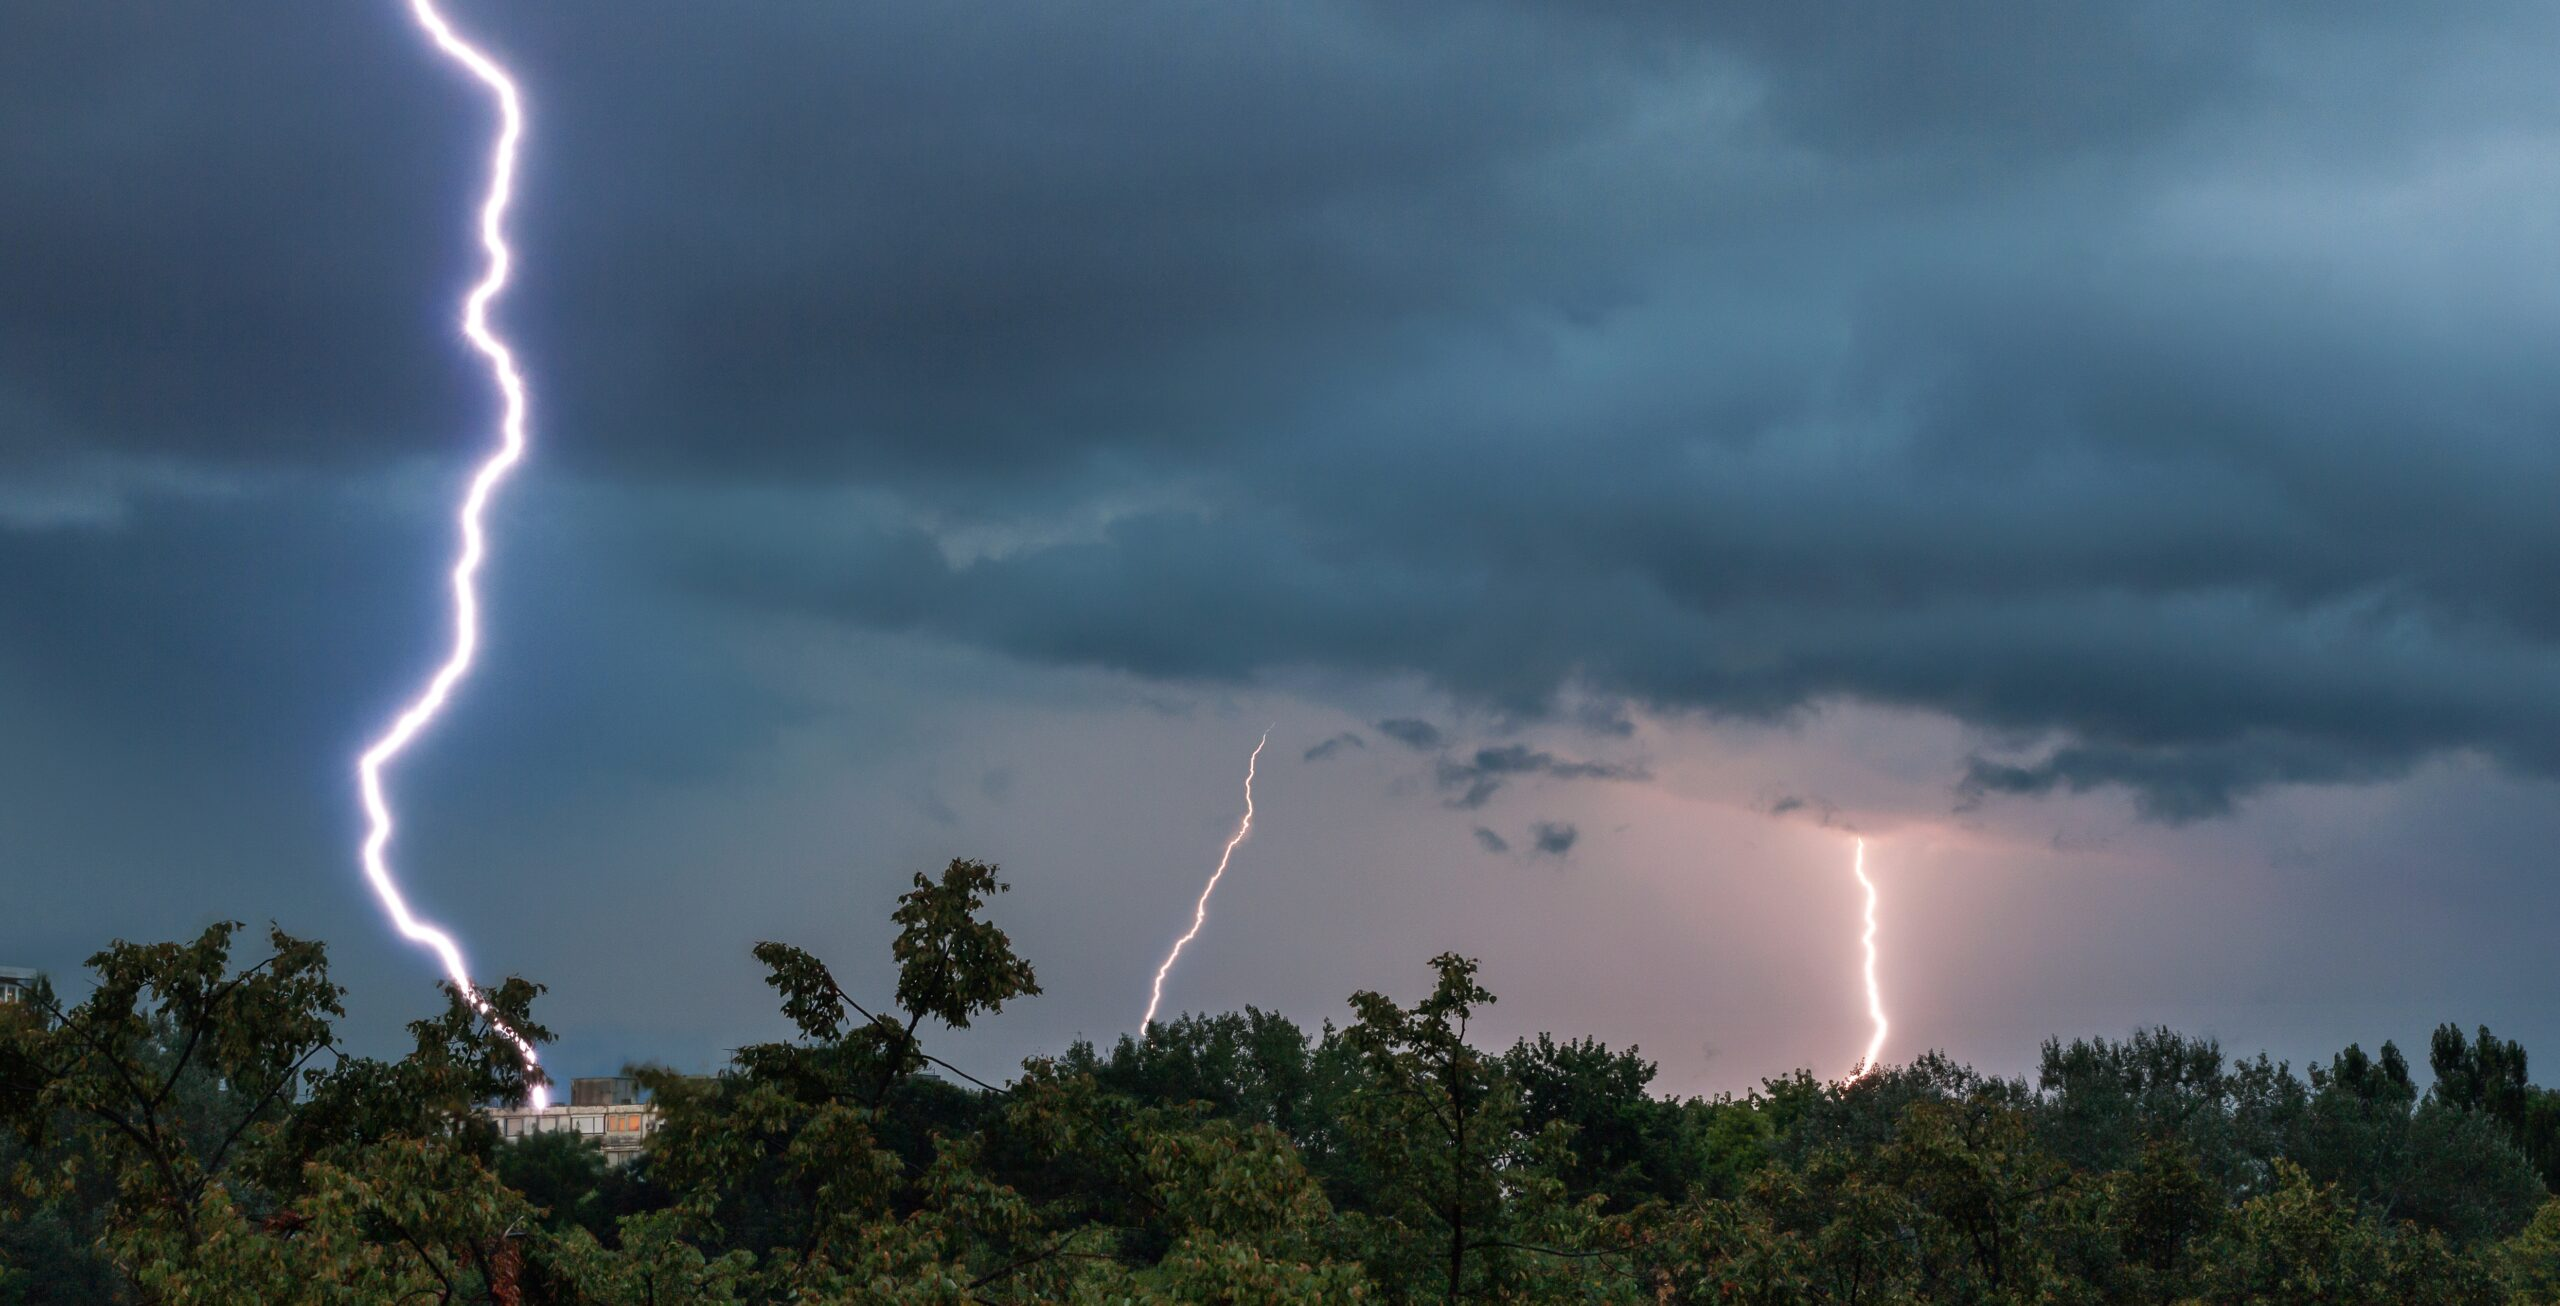 preparing your home for severe weather ahead storm with lighting